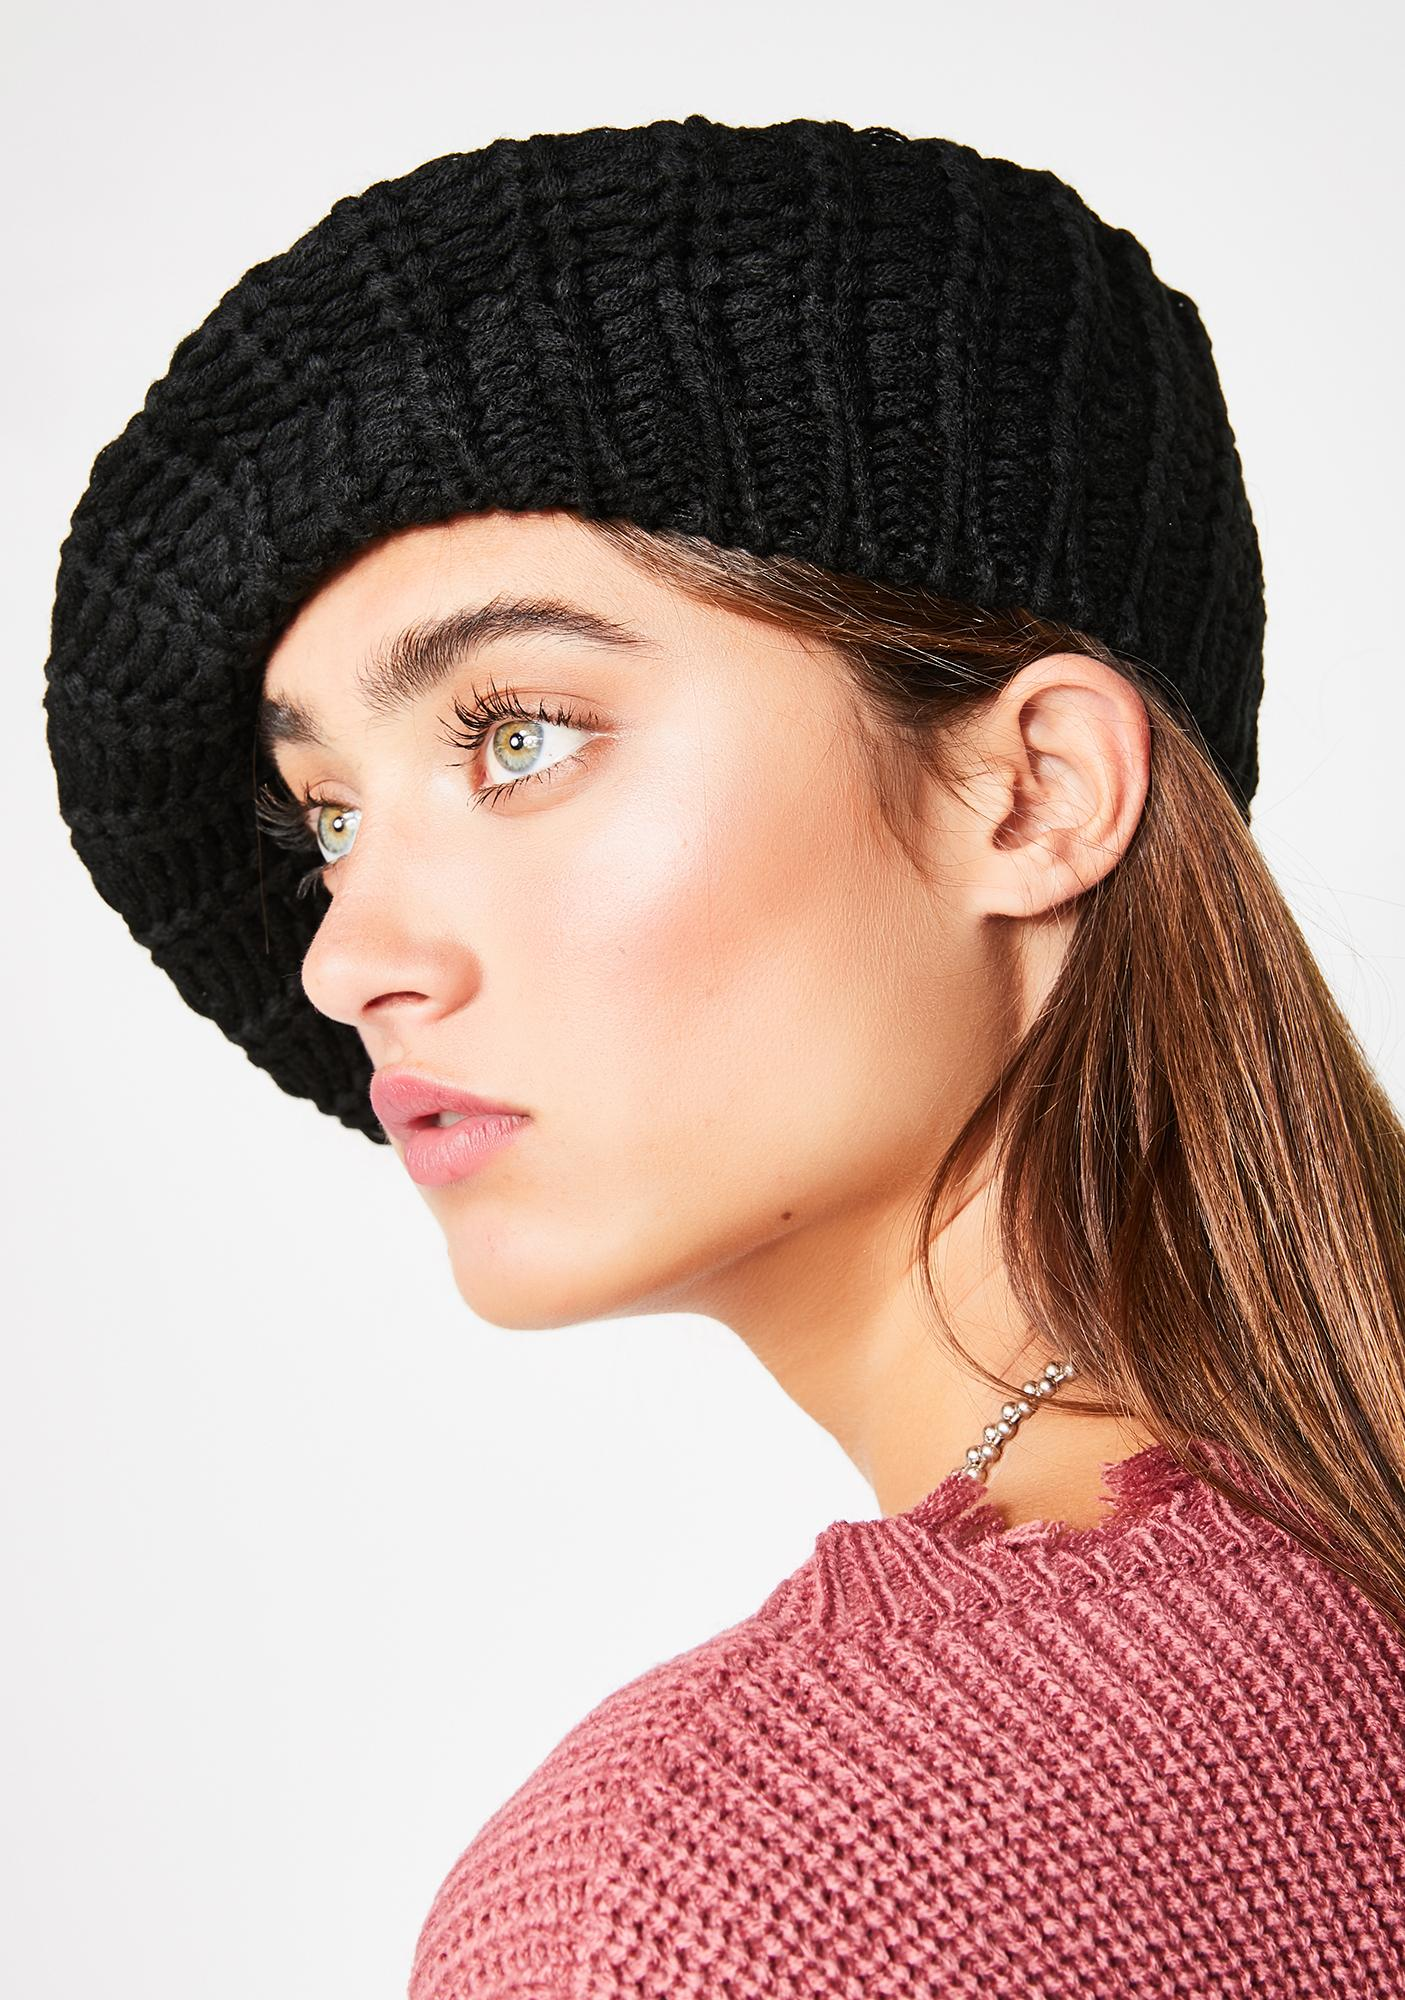 Wicked Posh Chic Pom Pom Beanie